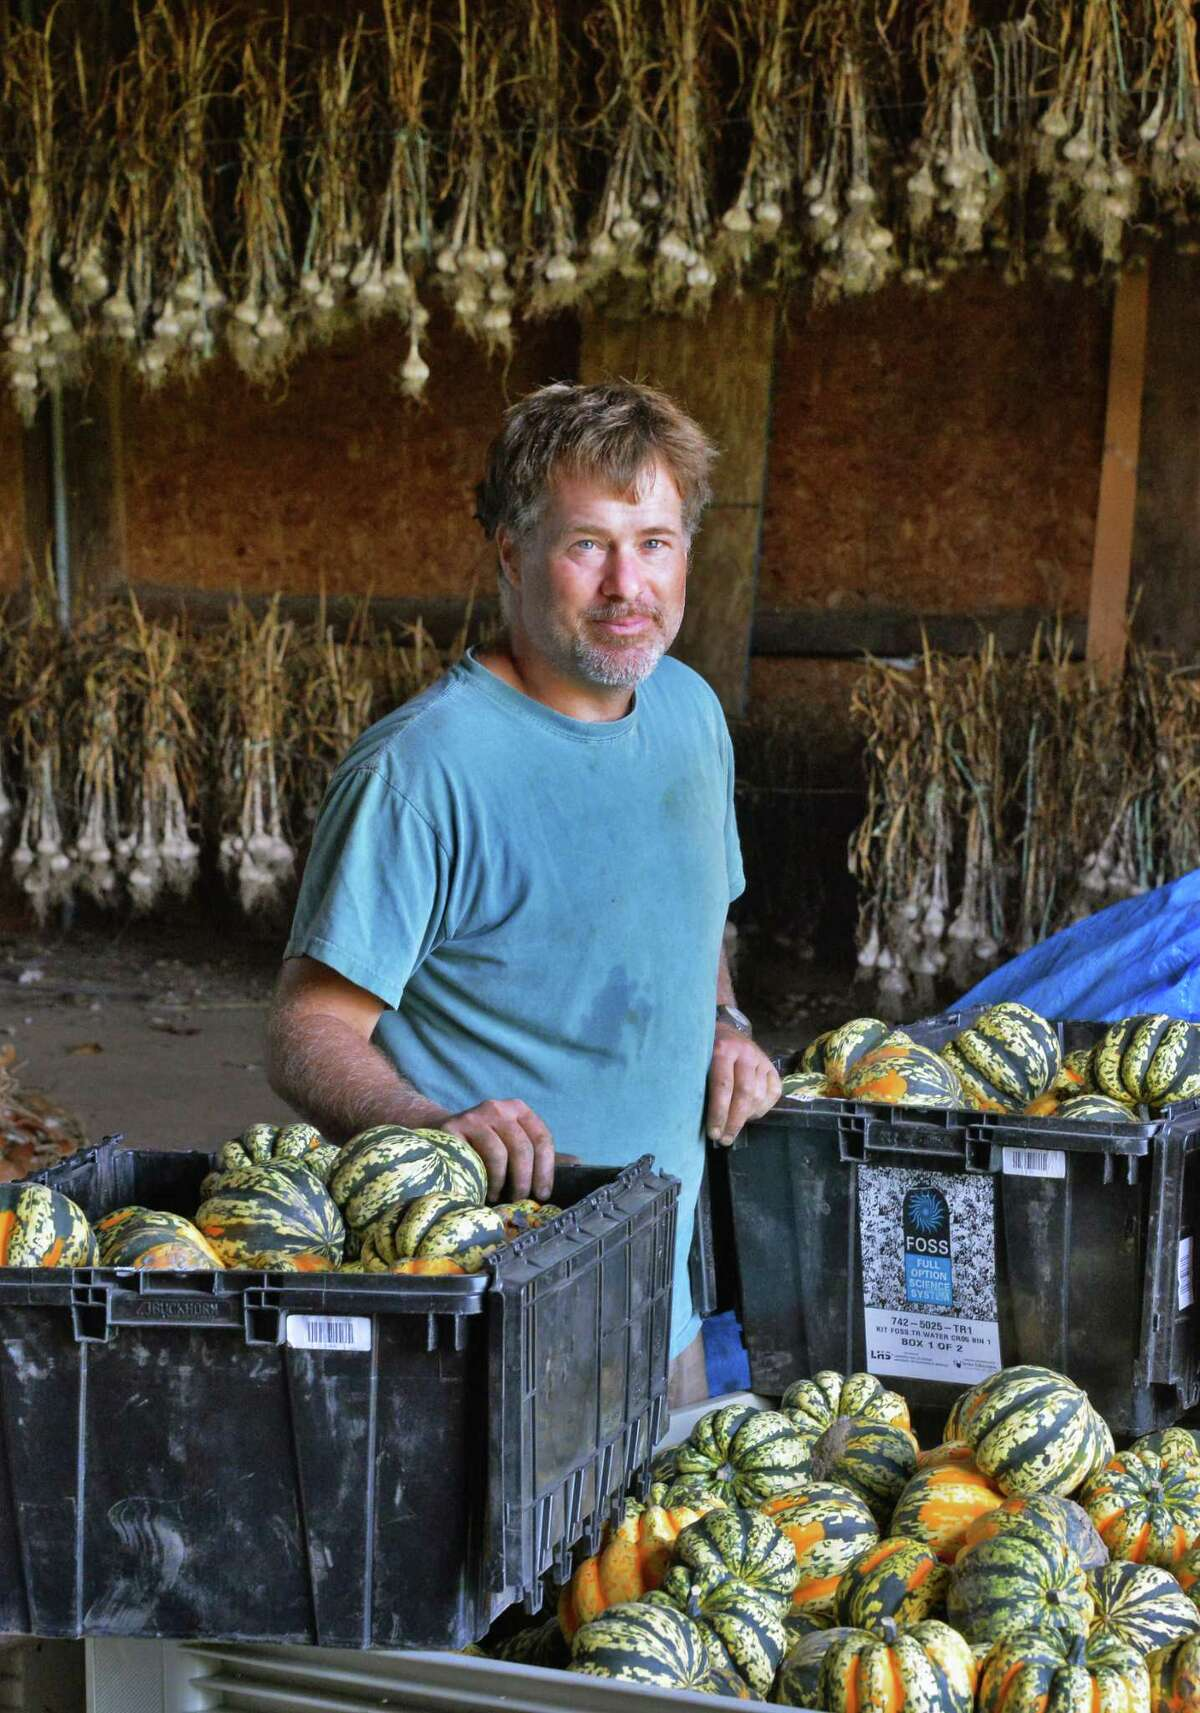 Farmer Thomas Christenfeld with harvested vegetables in a barn at his The Alleged Farm Tuesday Sept. 9, 2014, in Easton, NY. (John Carl D'Annibale / Times Union)